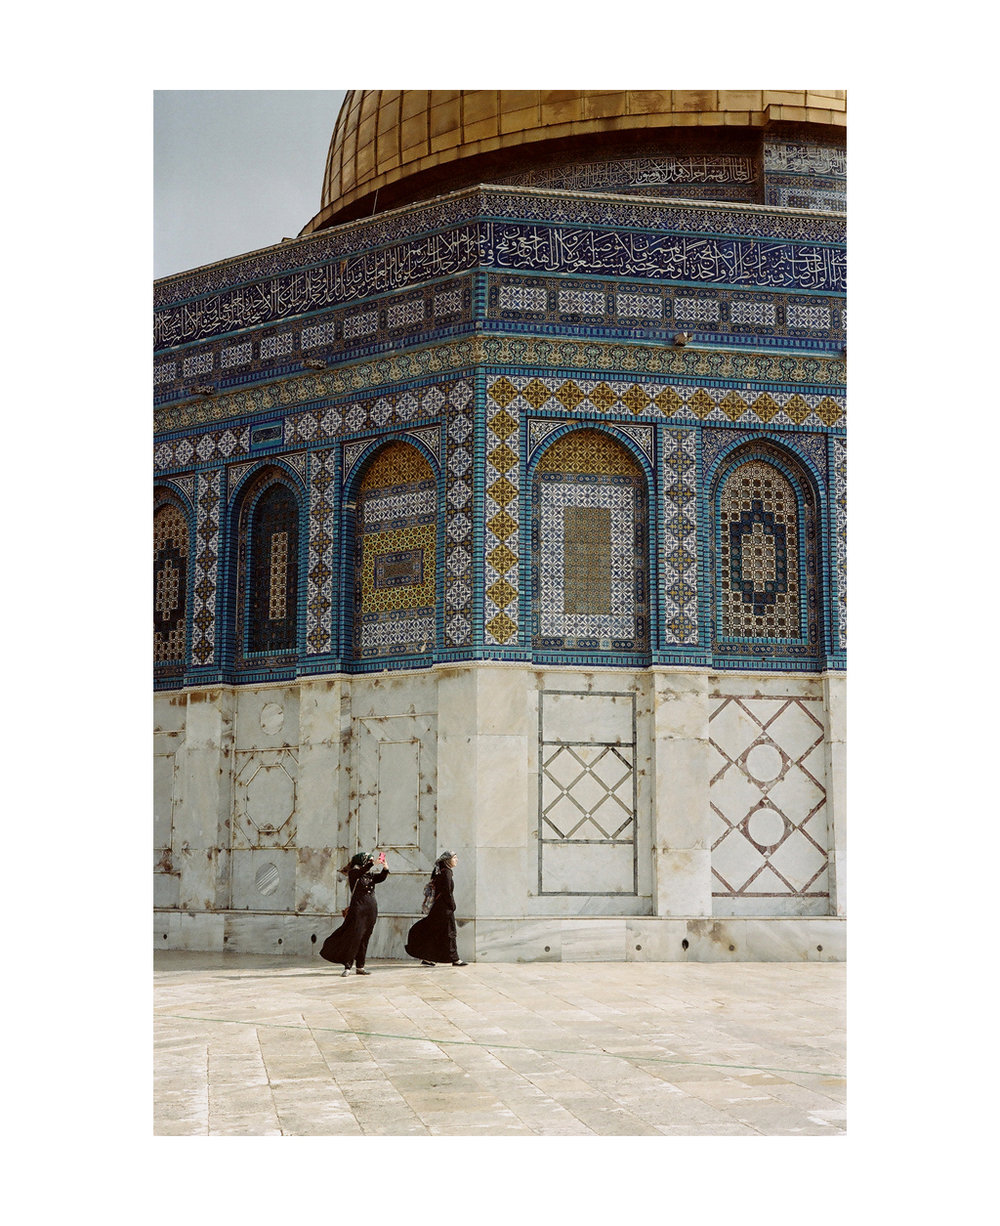 Taking selfies. Al-Aqsa, Jerusalem.